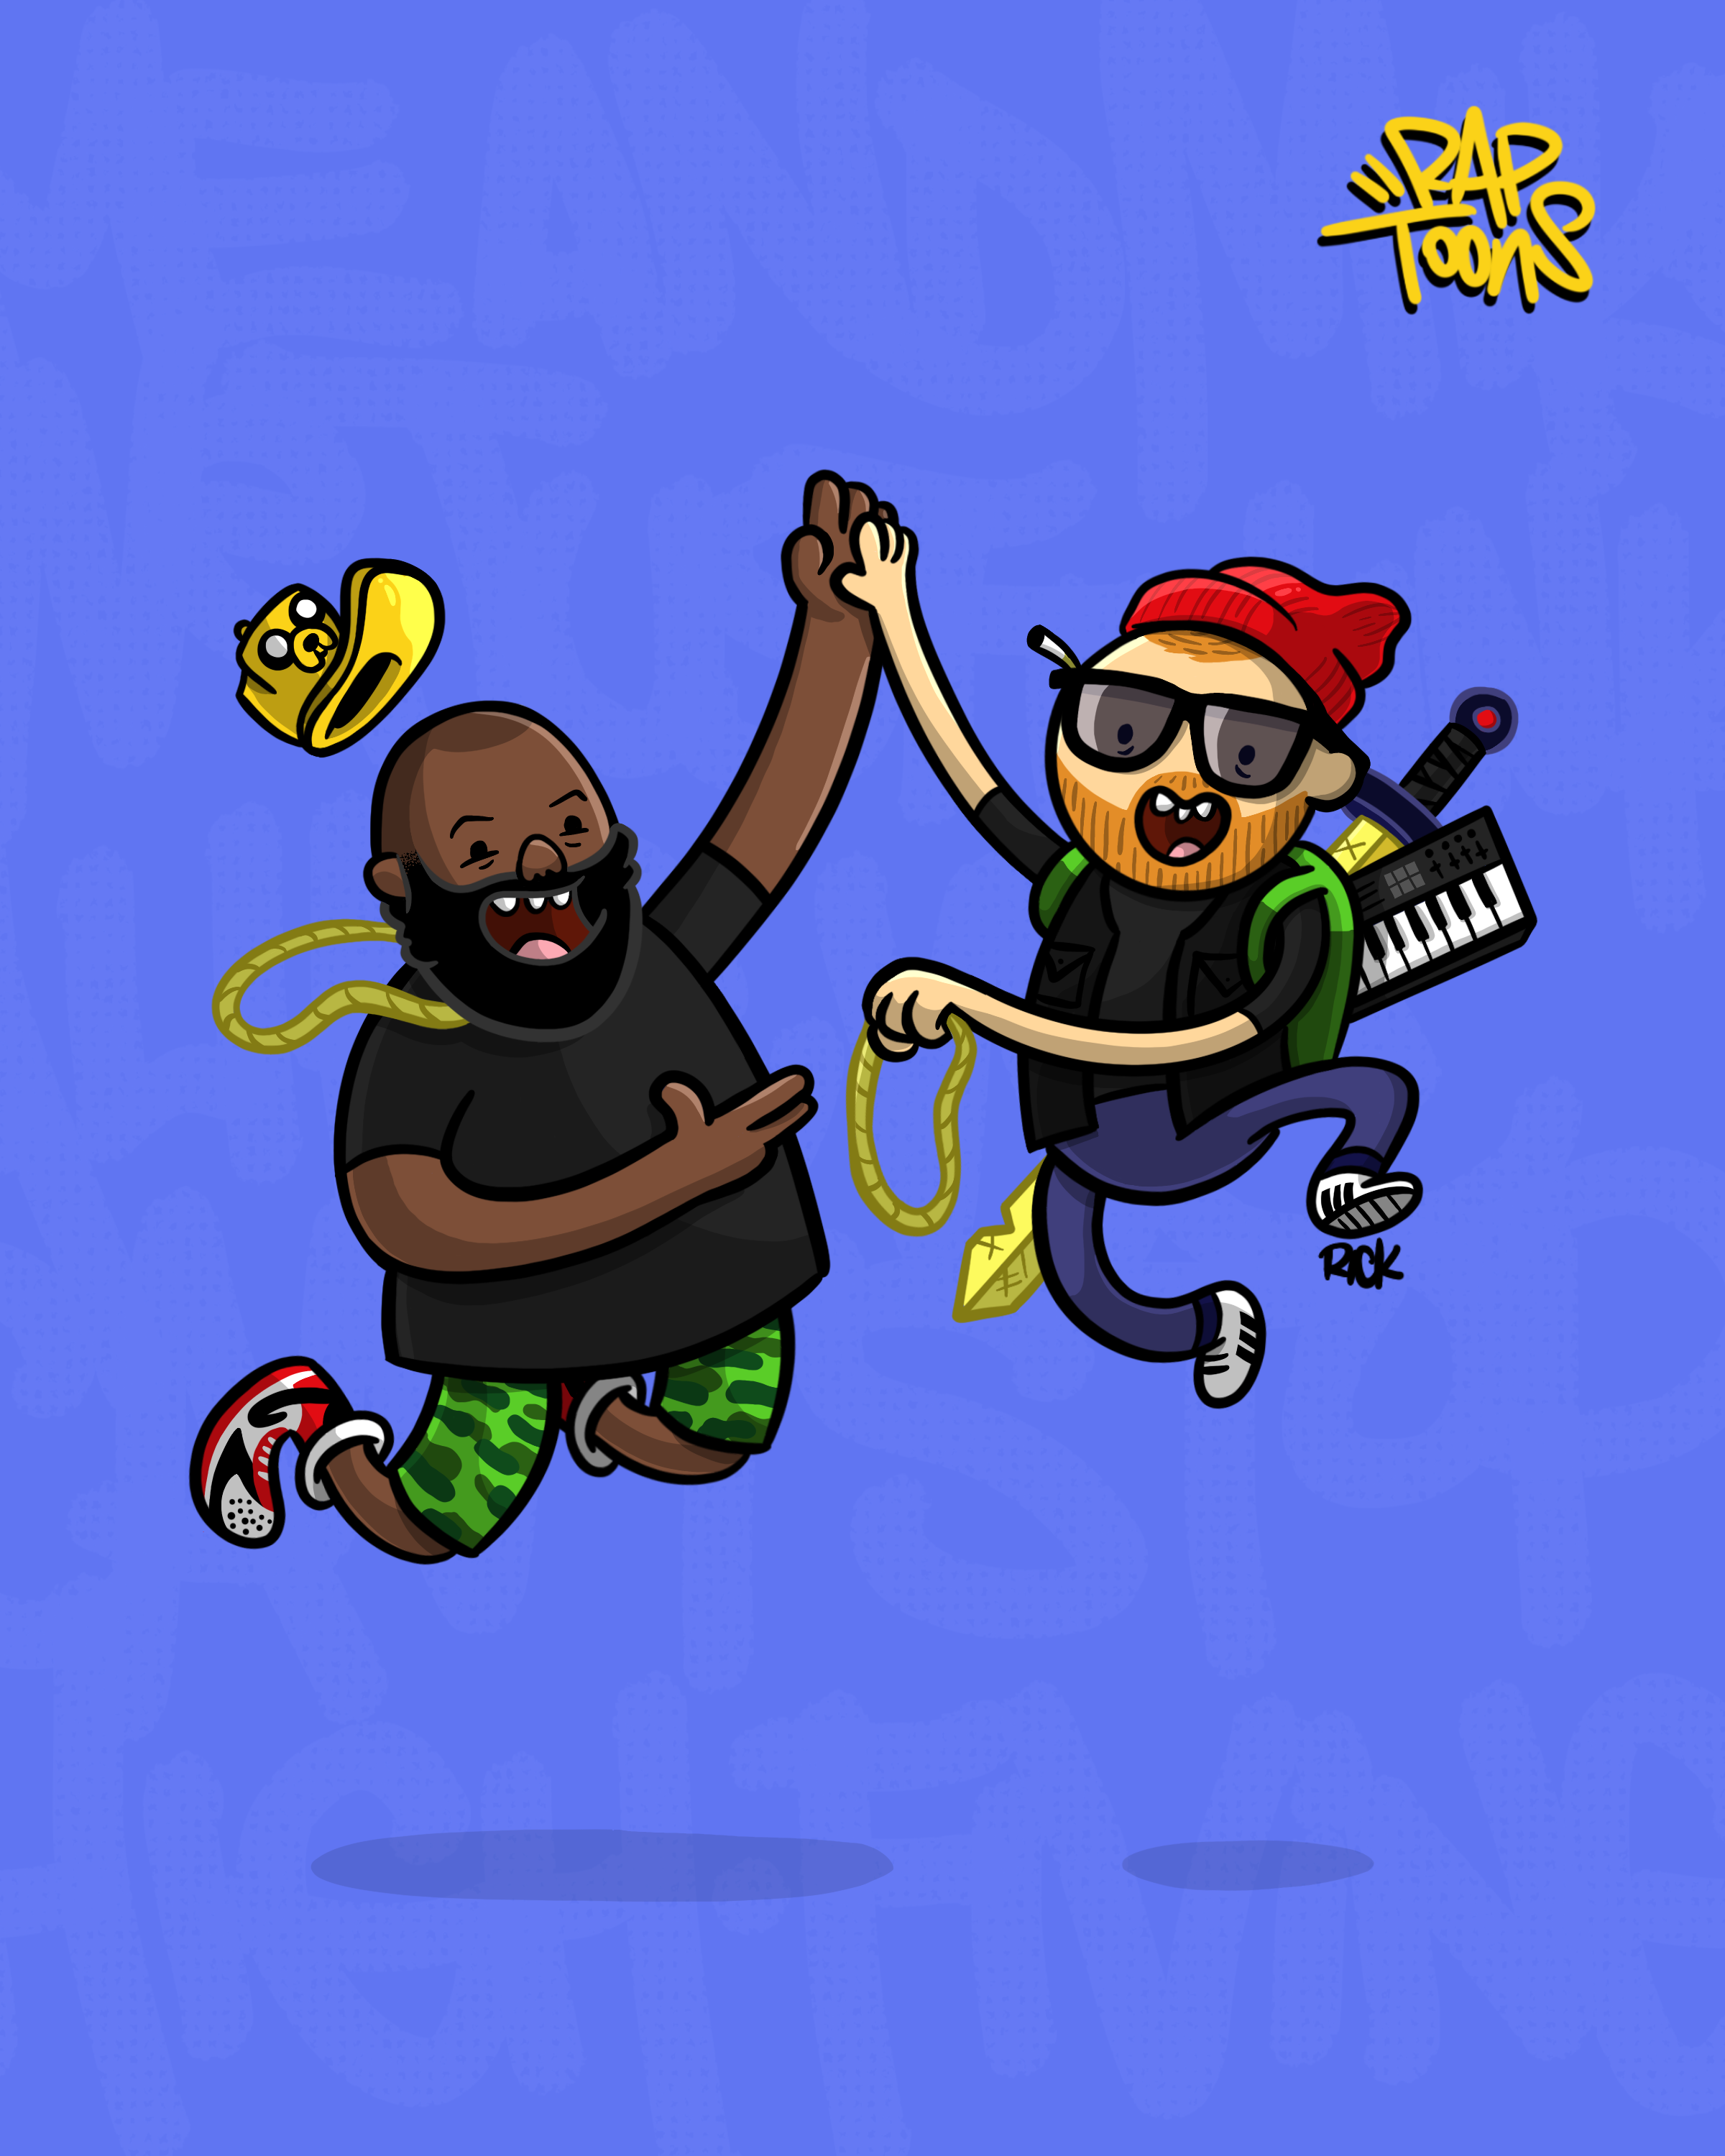 Run The Jewels fan art with Killer Mike and El-P doing the ultimate high-five from Adventure Time, part of the hip-hop lyrics cartoon illustration series called RapToons